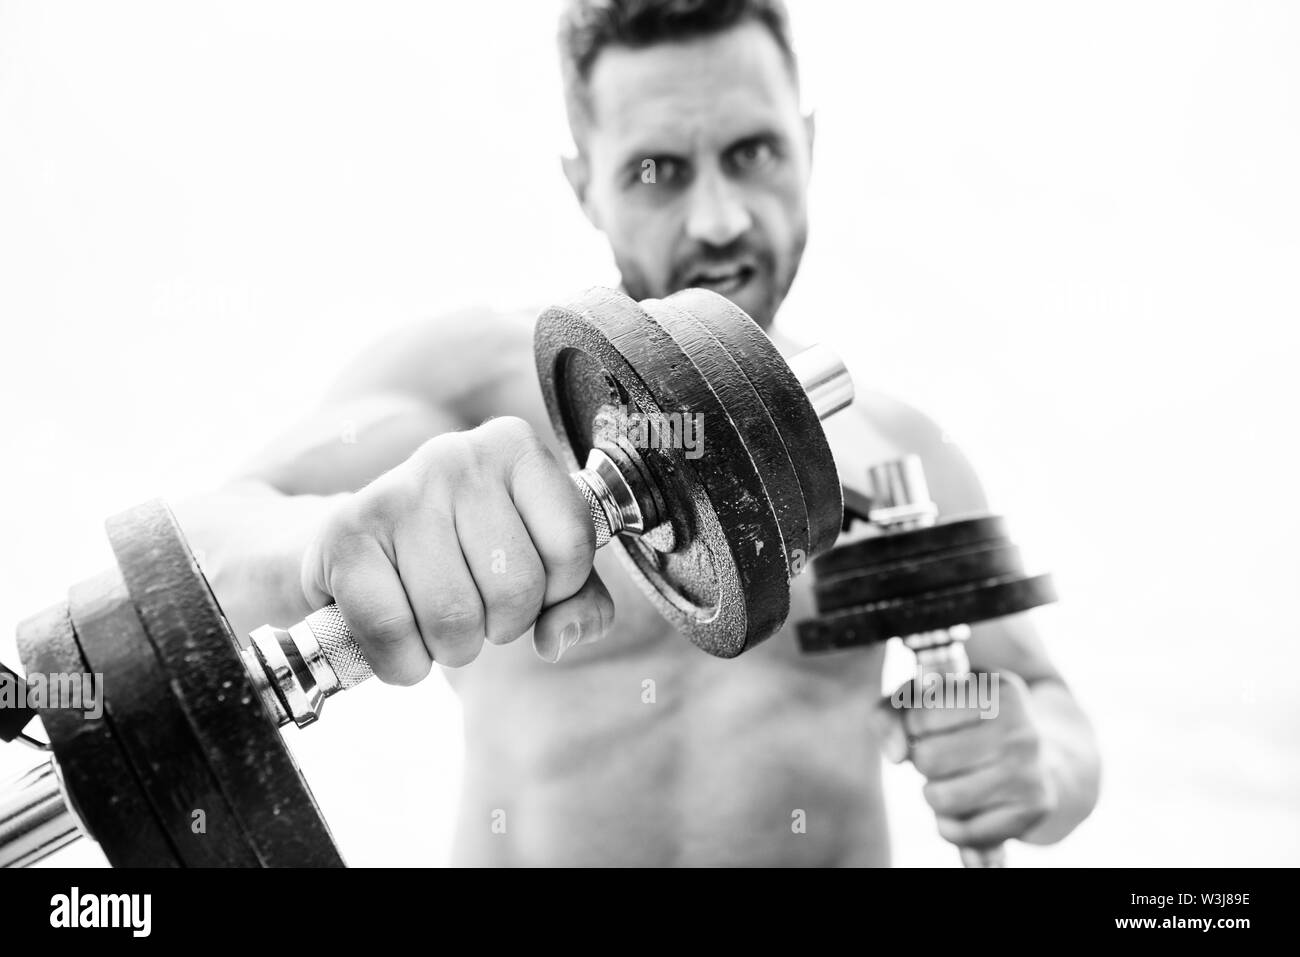 Muscular man exercising with barbell. fitness health diet. man sportsman with strong ab torso. steroids. athletic body. Dumbbell gym. sport equipment. Perfect six pack. Sport. i love sport. - Stock Image